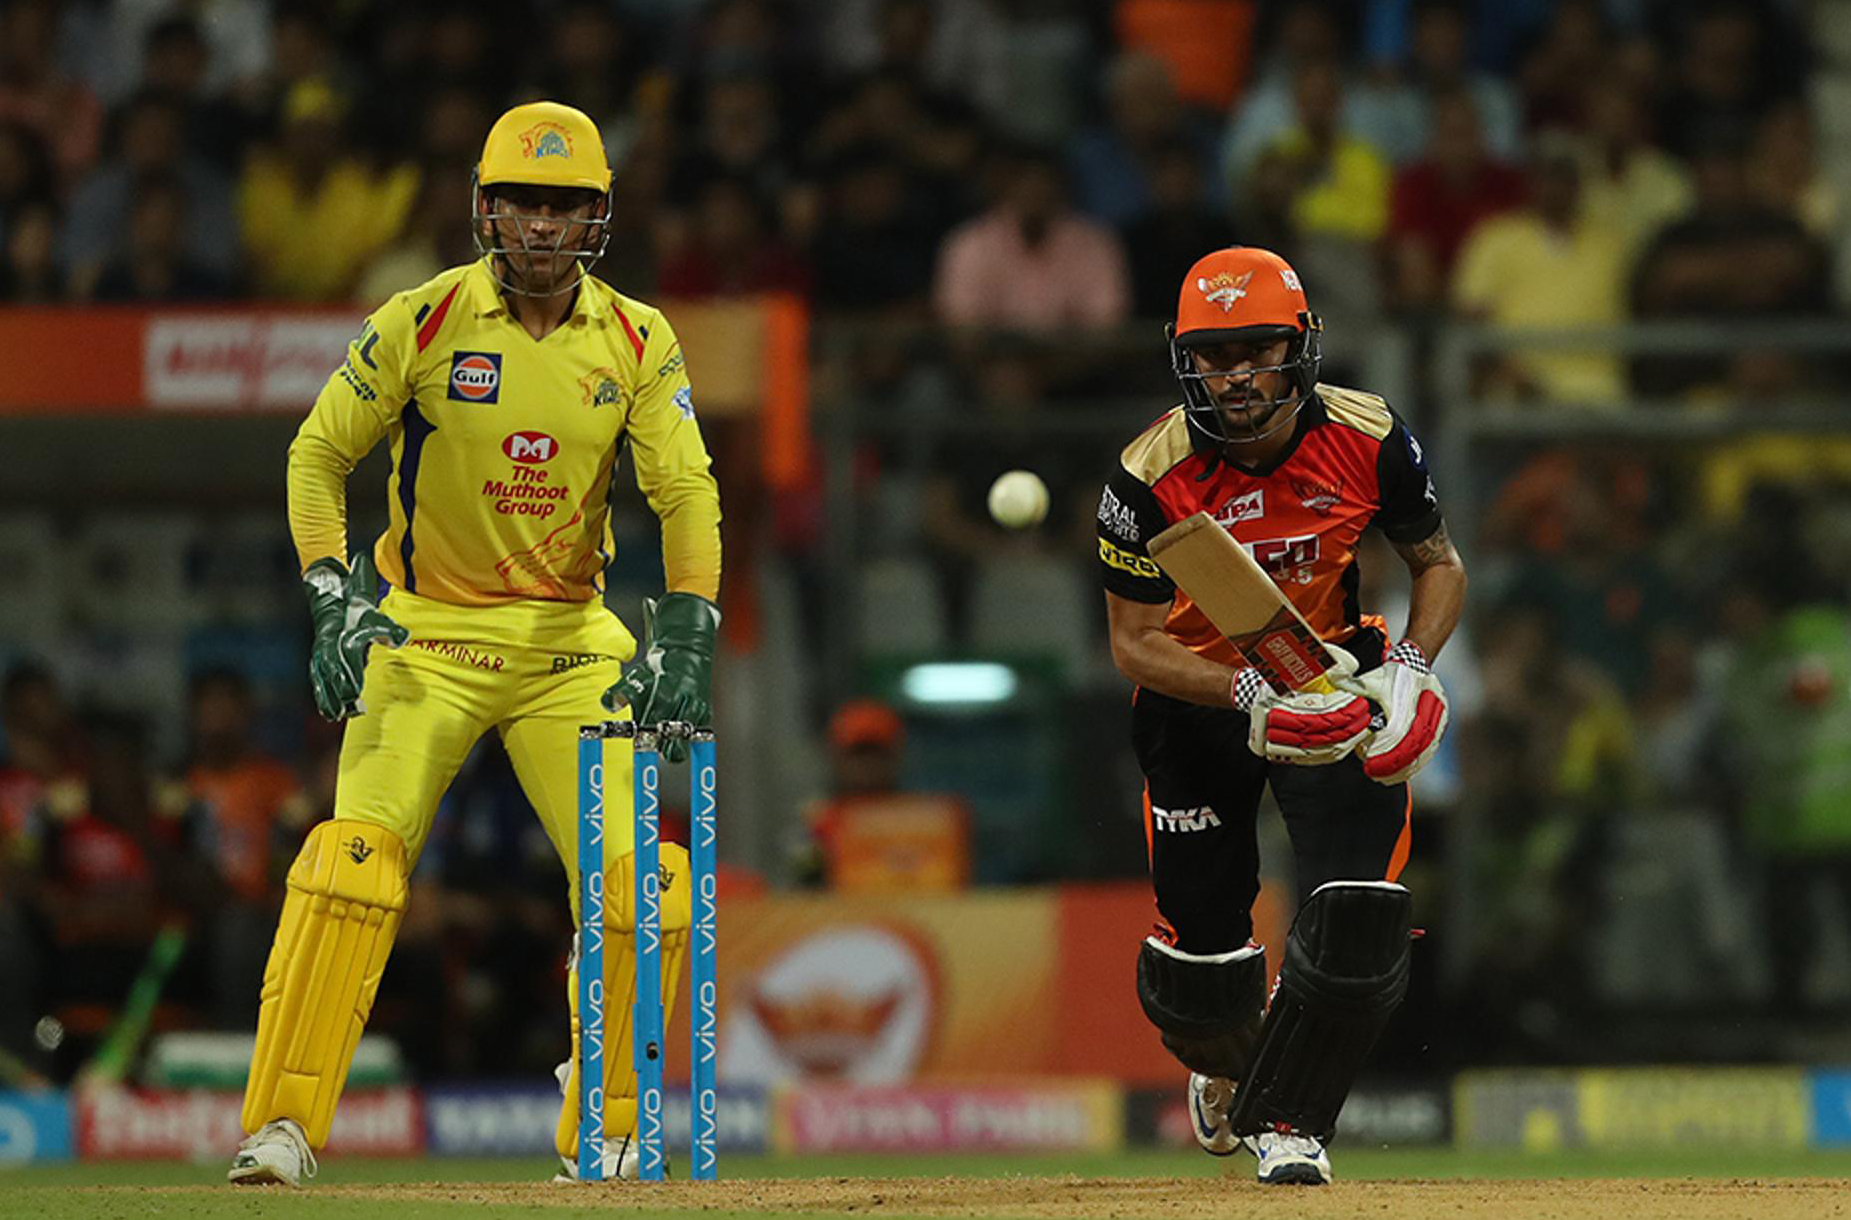 IPL 2018, Final: Chennai Super Kings, Sunrisers Hyderabad to square off in battle royal at Wankhede